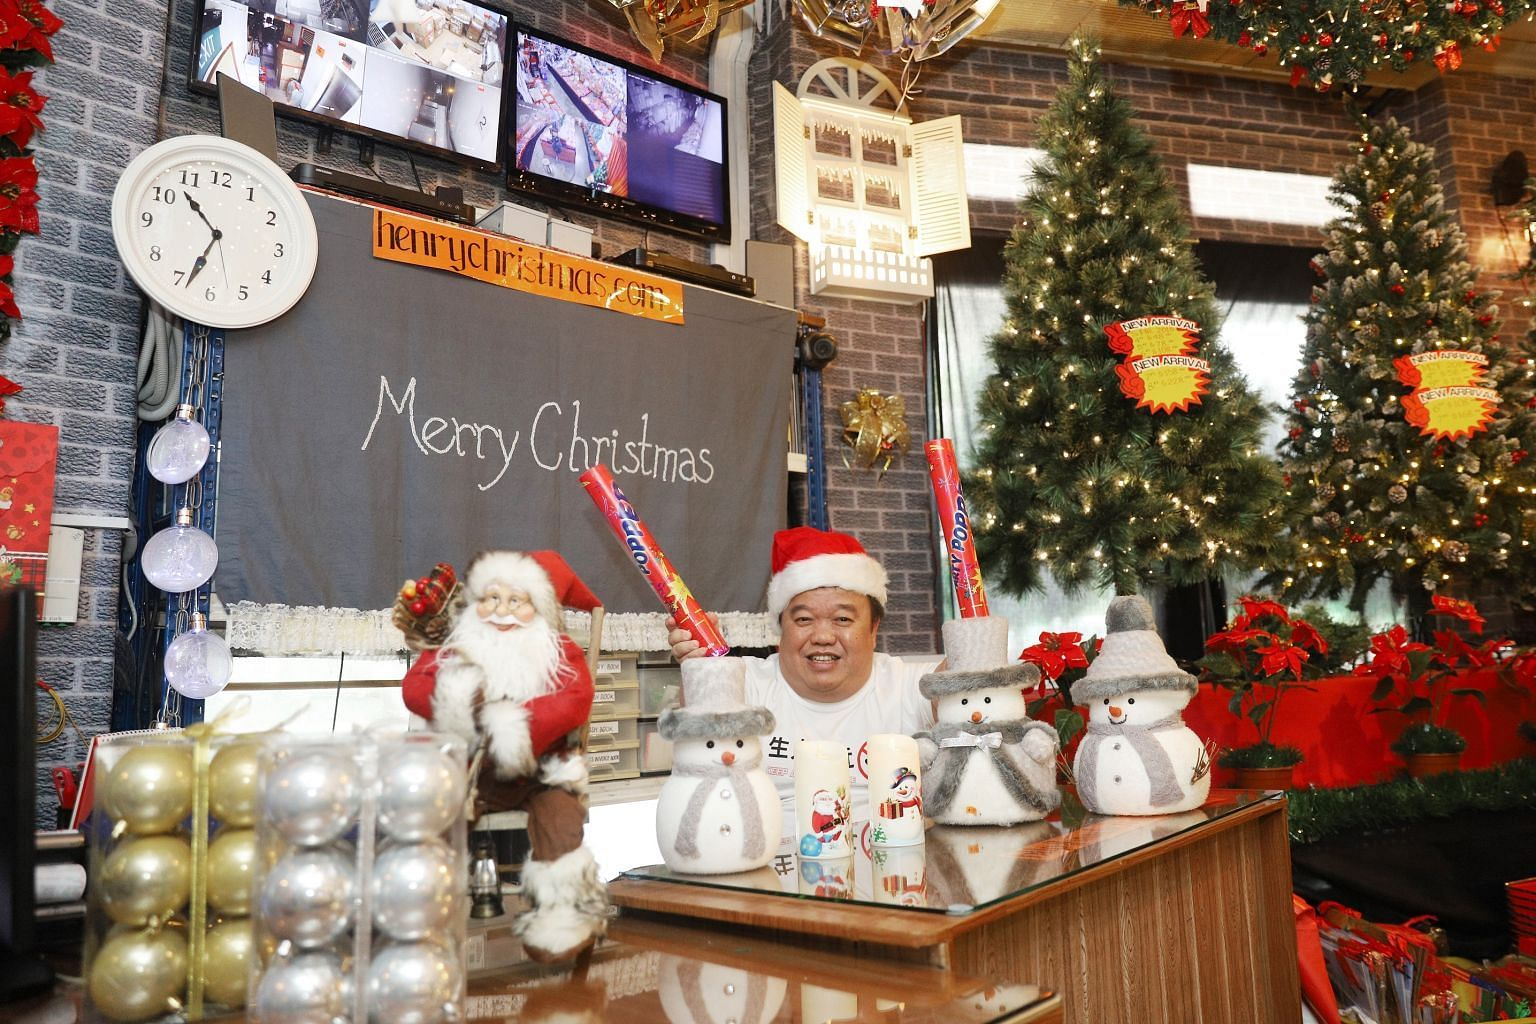 Mr Derrick Tan, owner of Henry Christmas Wholesaler, says the shop has been open since his grandfather opened a market in the space back in the 1930s.